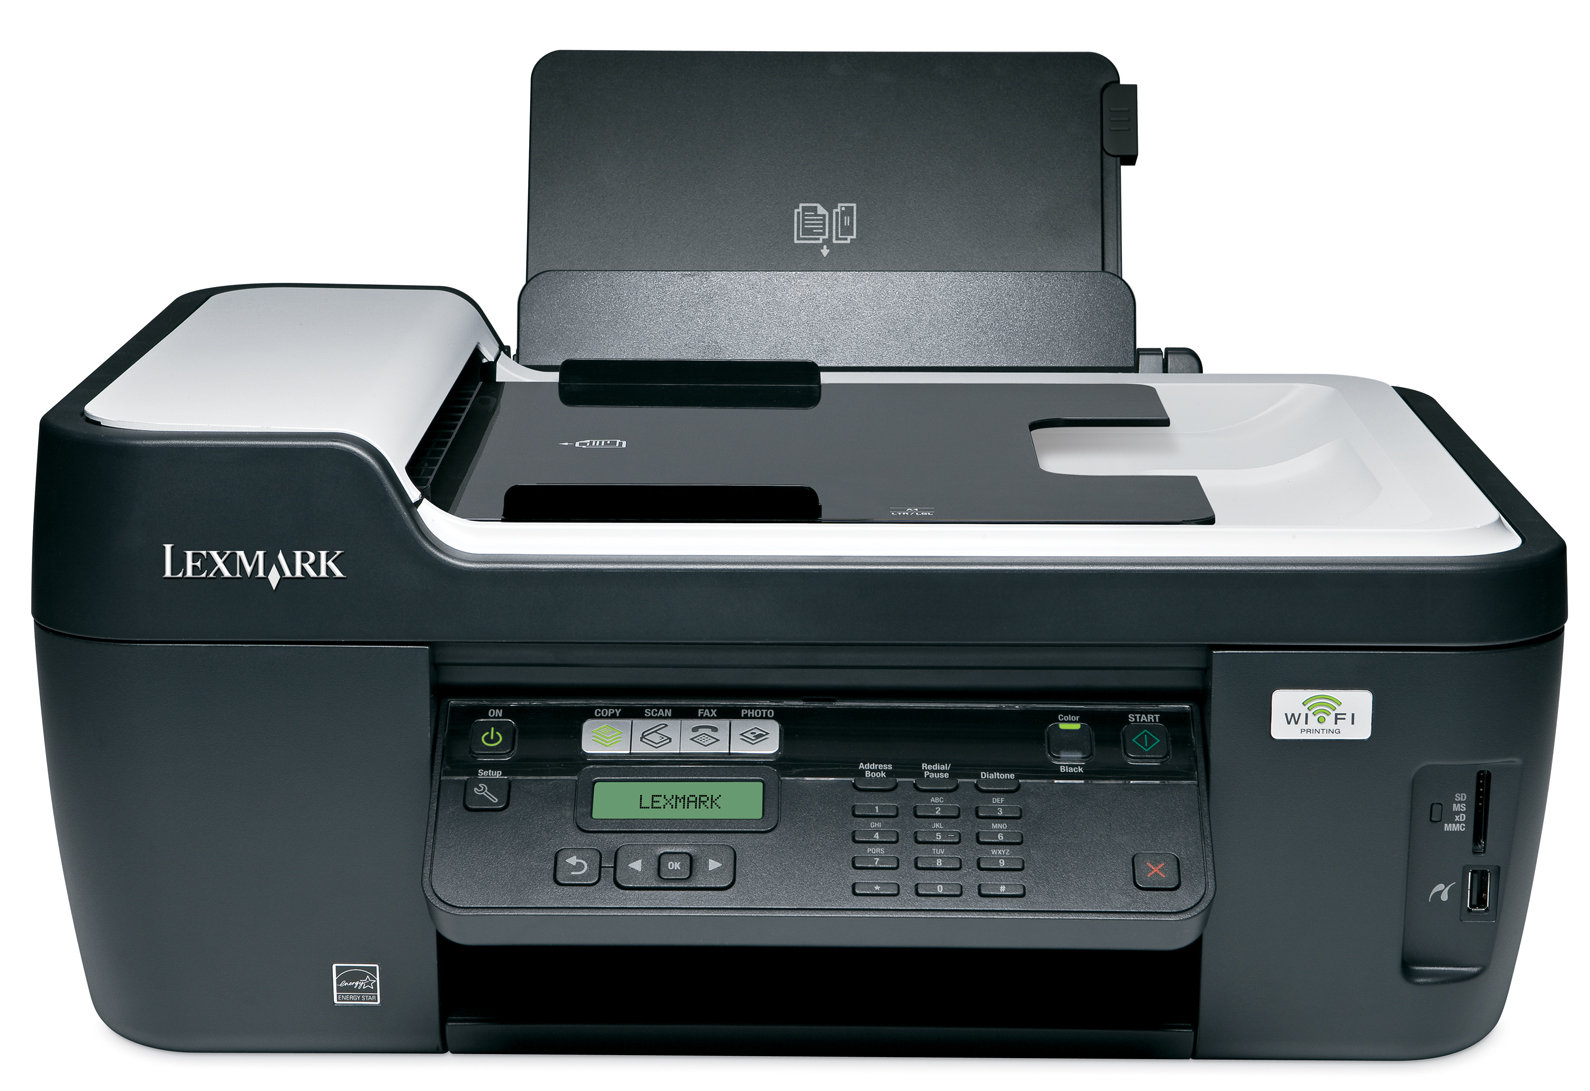 Perfdata provides the best Lexmark Printer with latest features in affordable price. It also offers various    products like servers and Lexmark Printer and many more at reasonable rates.